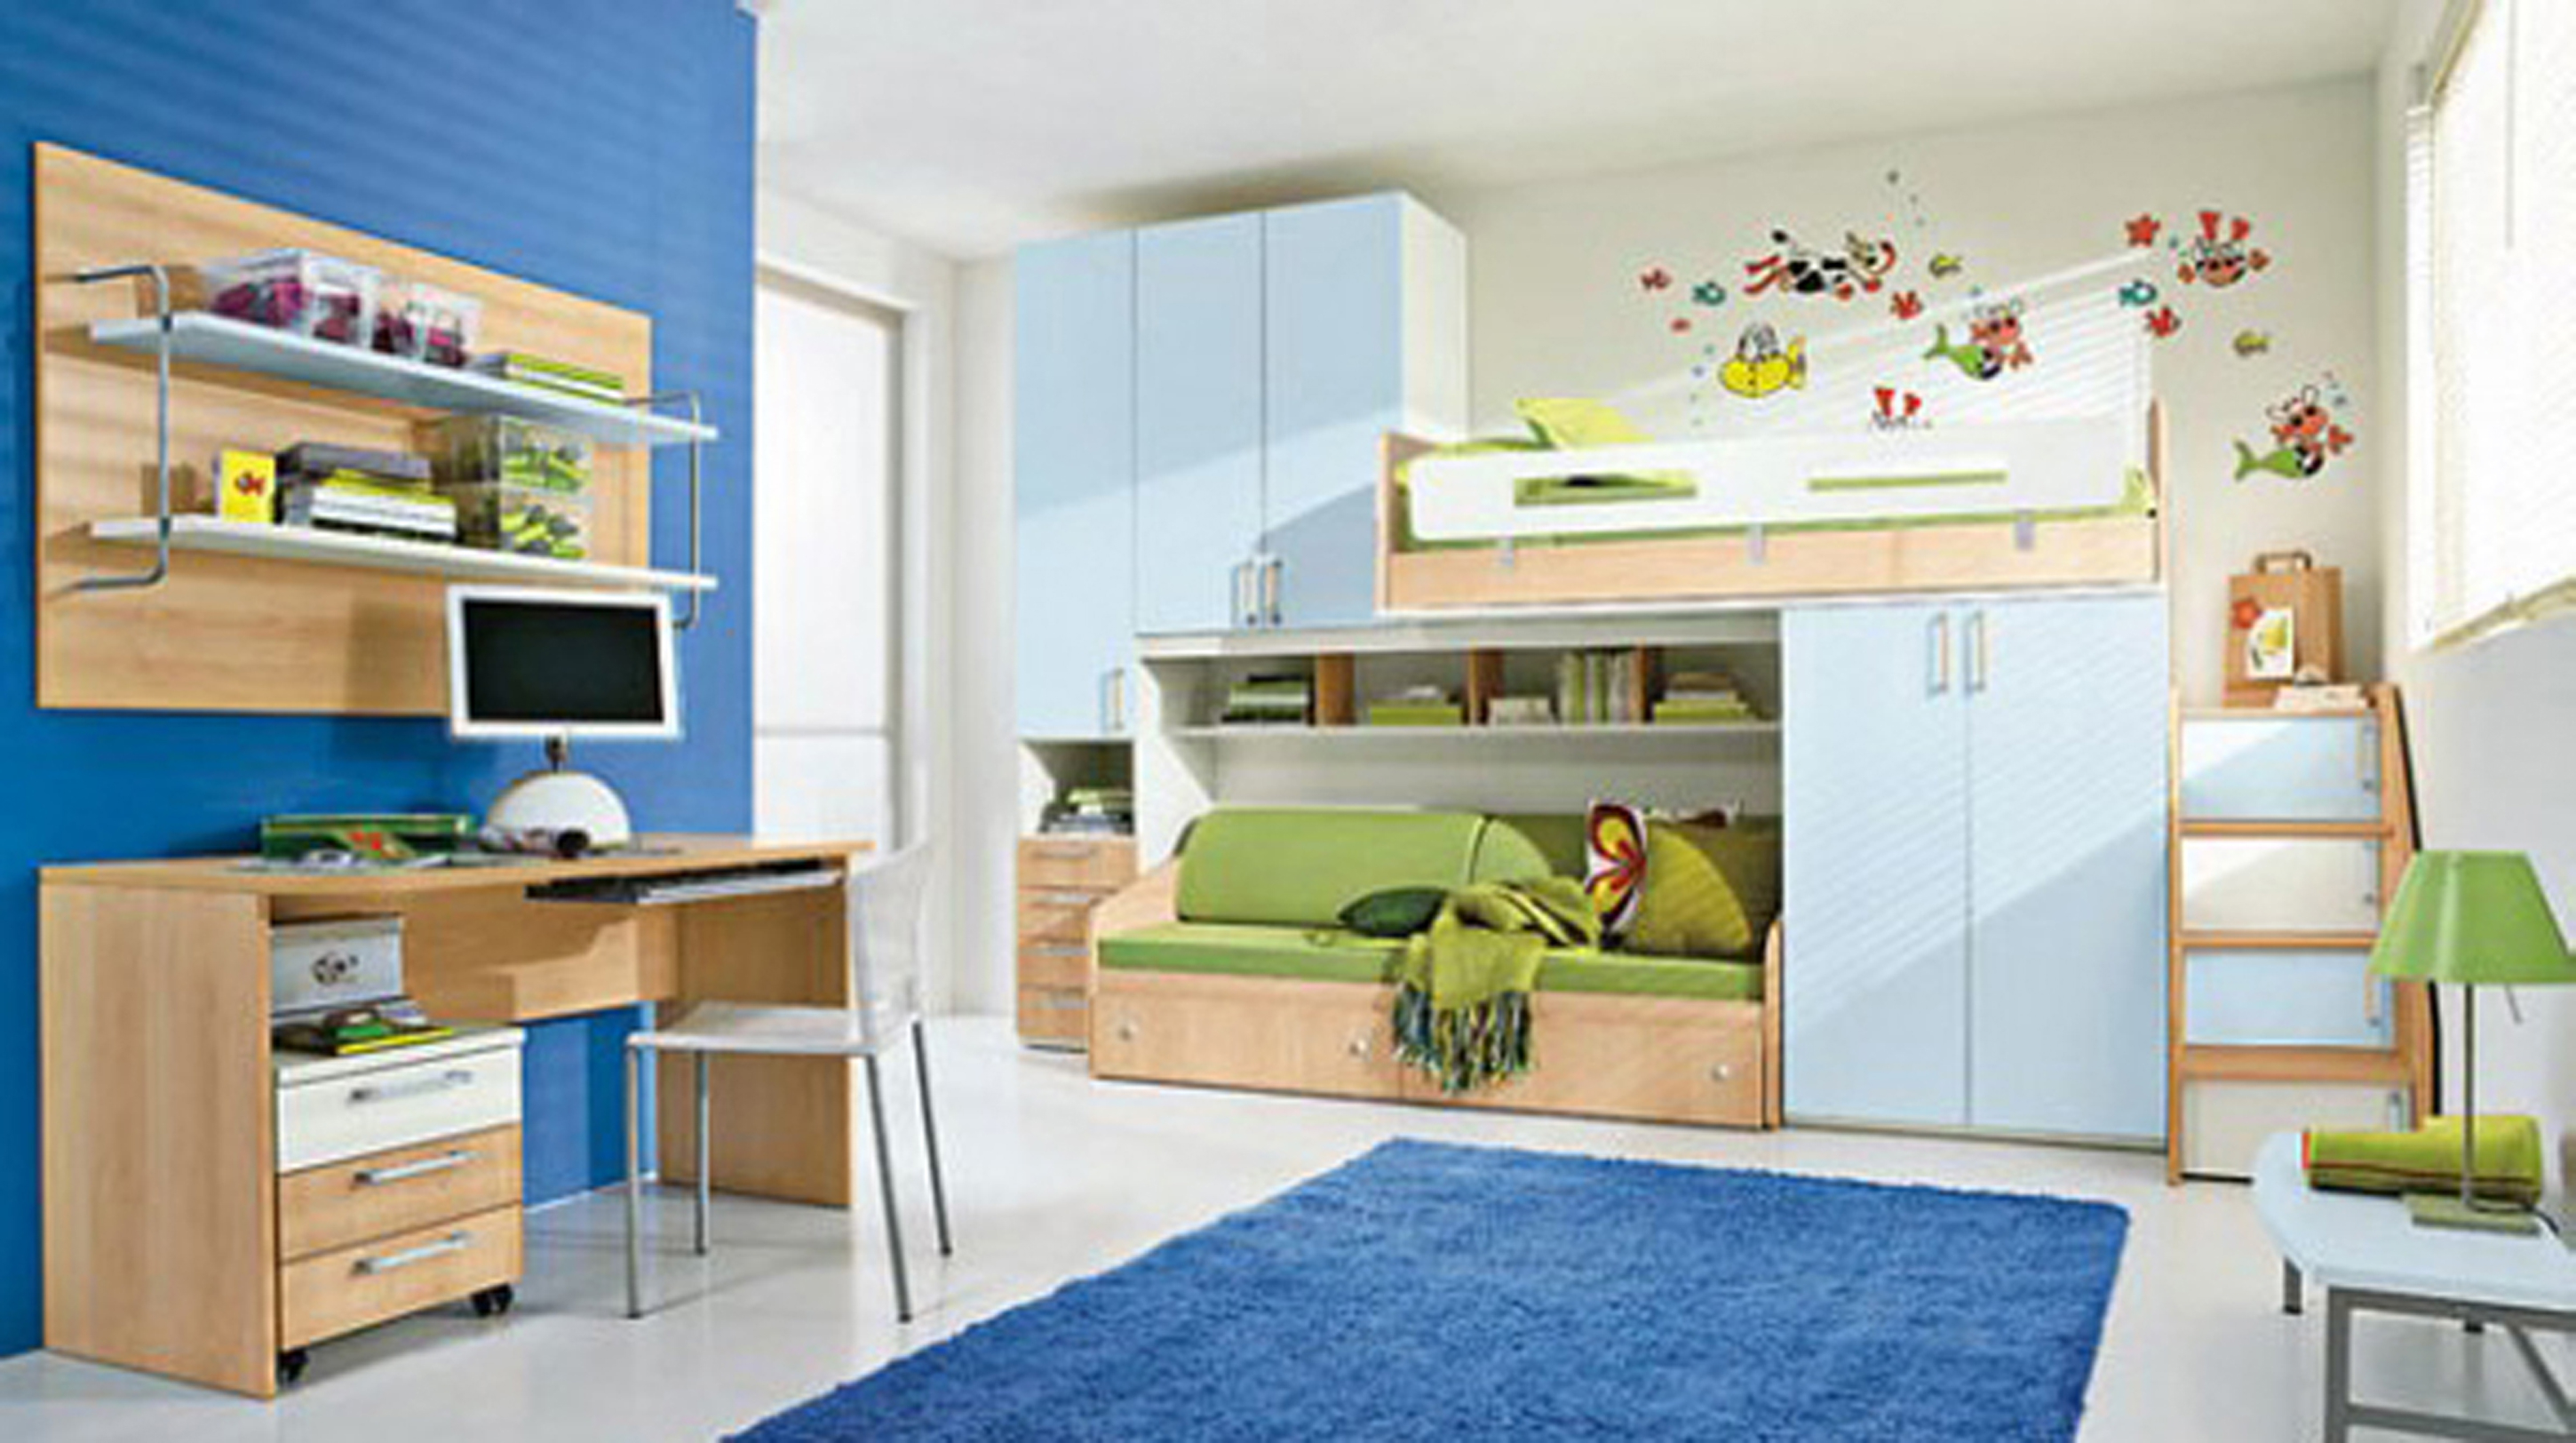 Kids Bedroom Cool Boys Bedroom Decoration Idea With Light Blue Wardrobe Dark Blue Rug And Brown Study Table With White Chair Impressive Boys Bedroom Decoration Ideas (View 24 of 28)